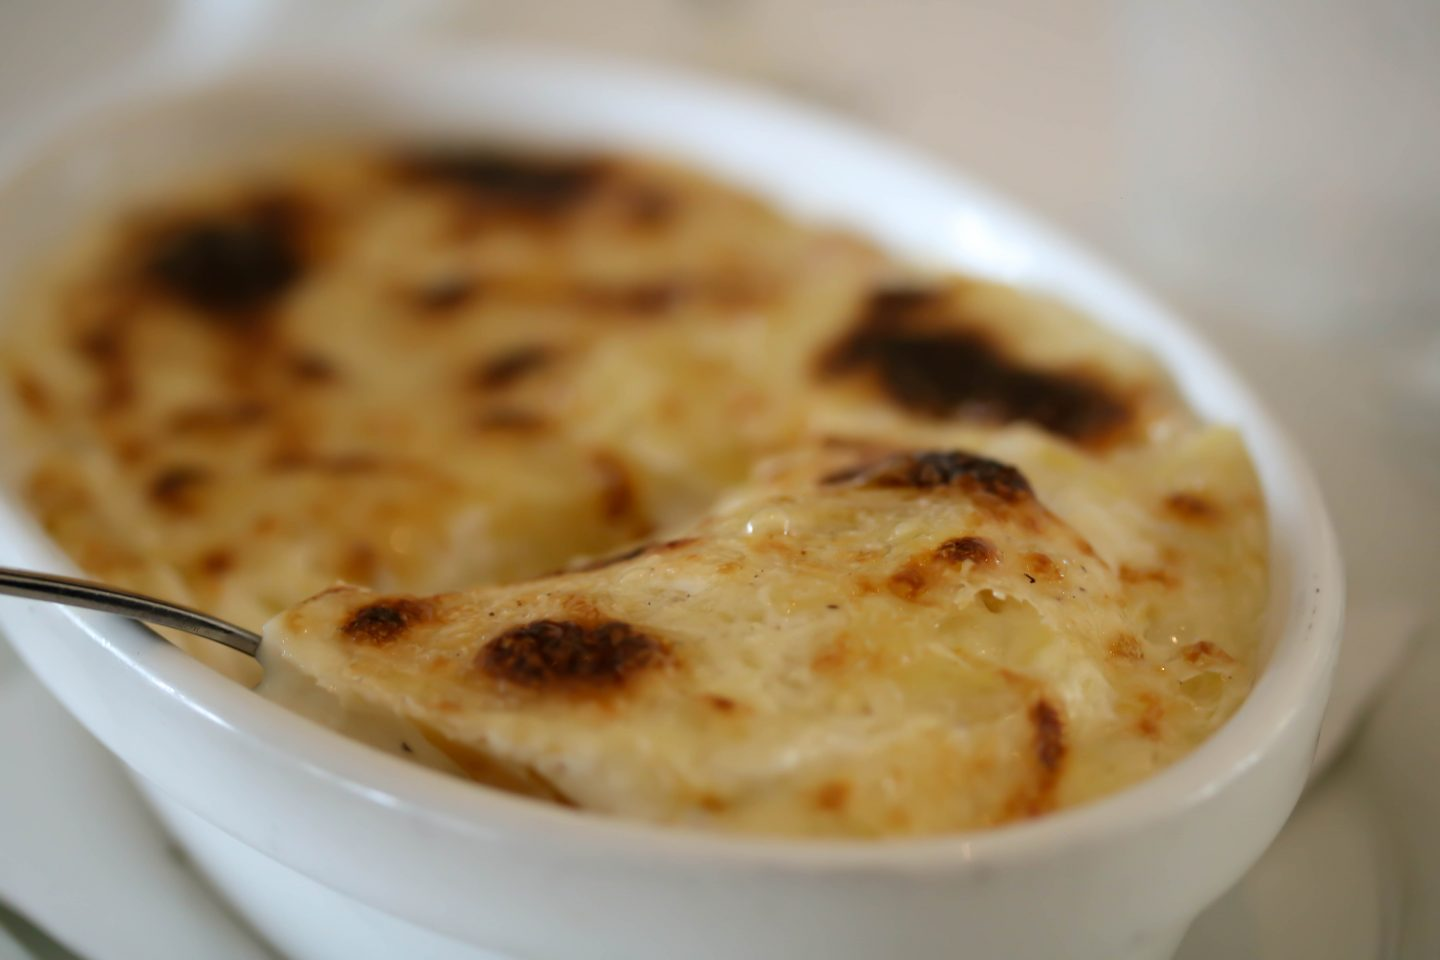 Potato Dauphinoise at La Petite Maison, the best restaurant for lunch in Dubai on the Lifestyle Enthusiast blog